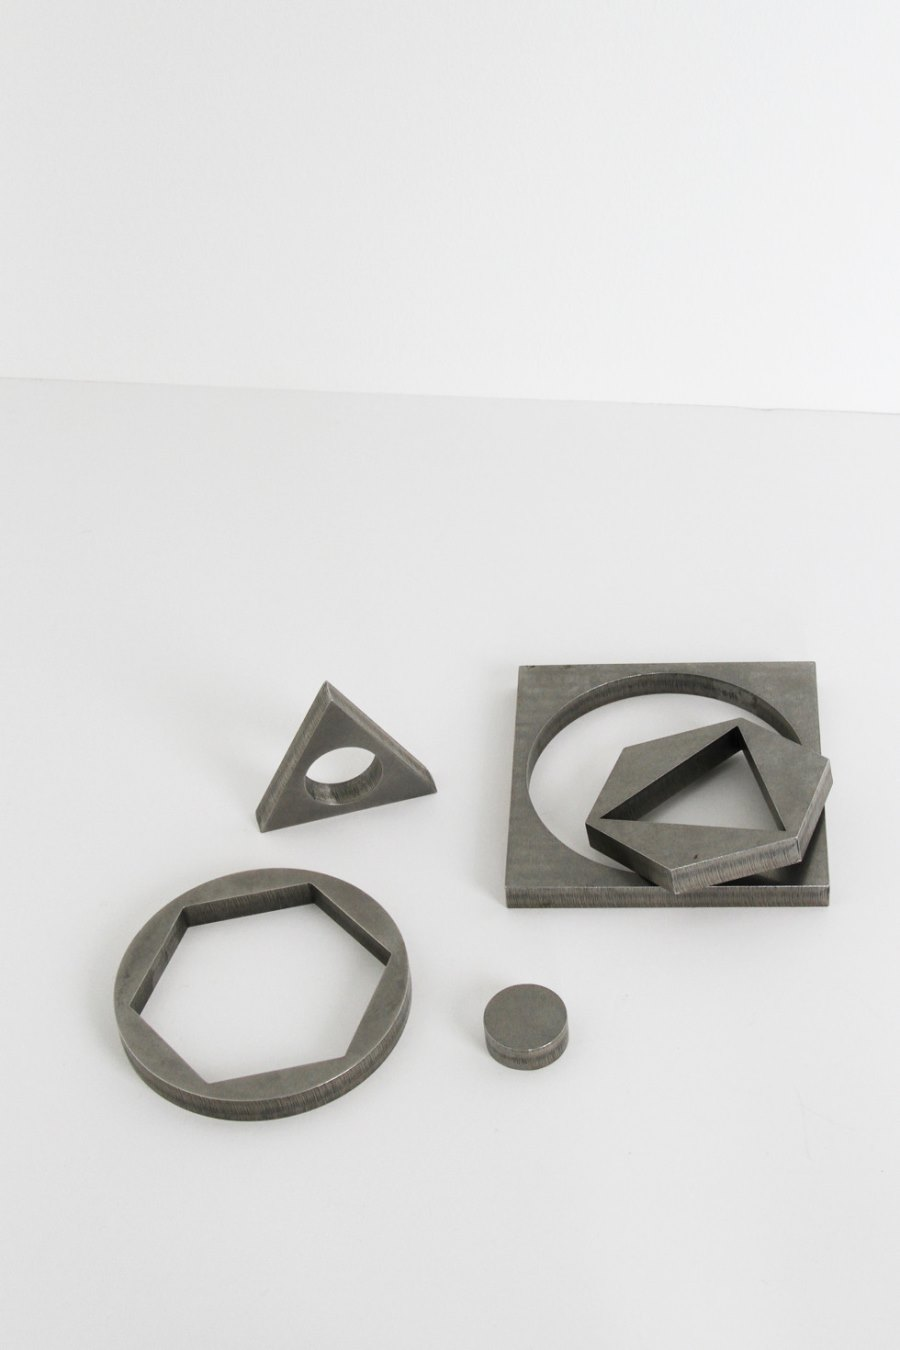 Metal objects from Table of Contents Studio